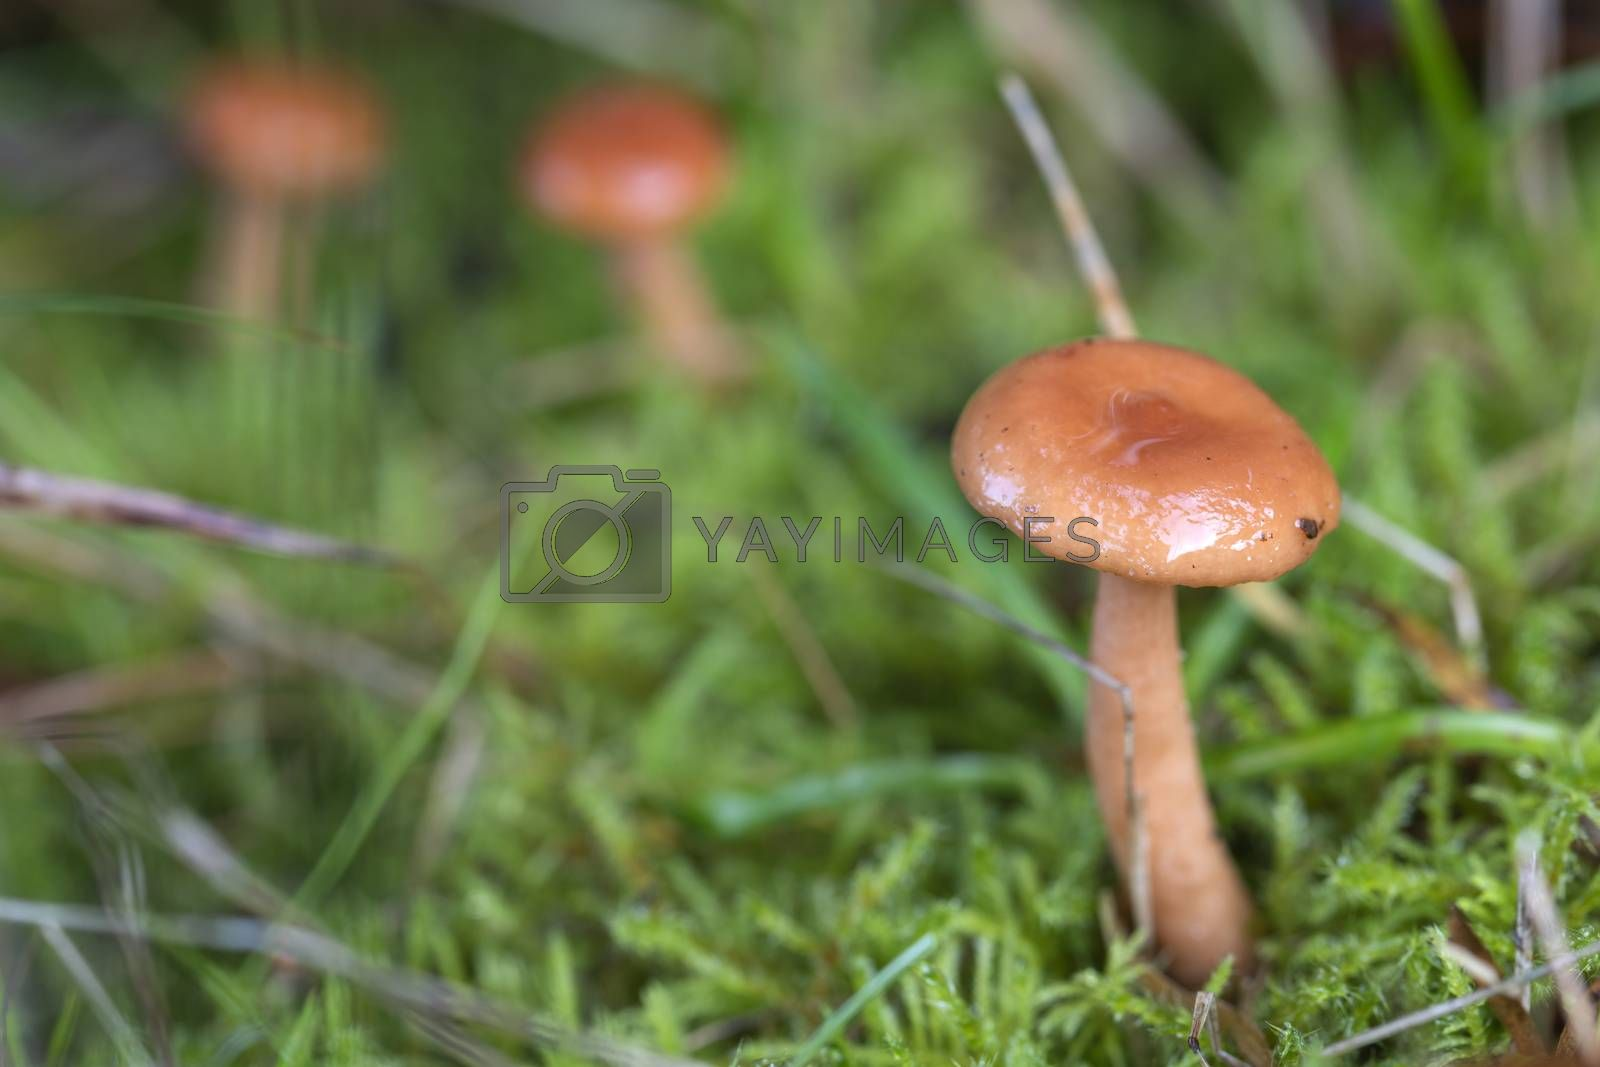 Three small brown mushrooms in the grass